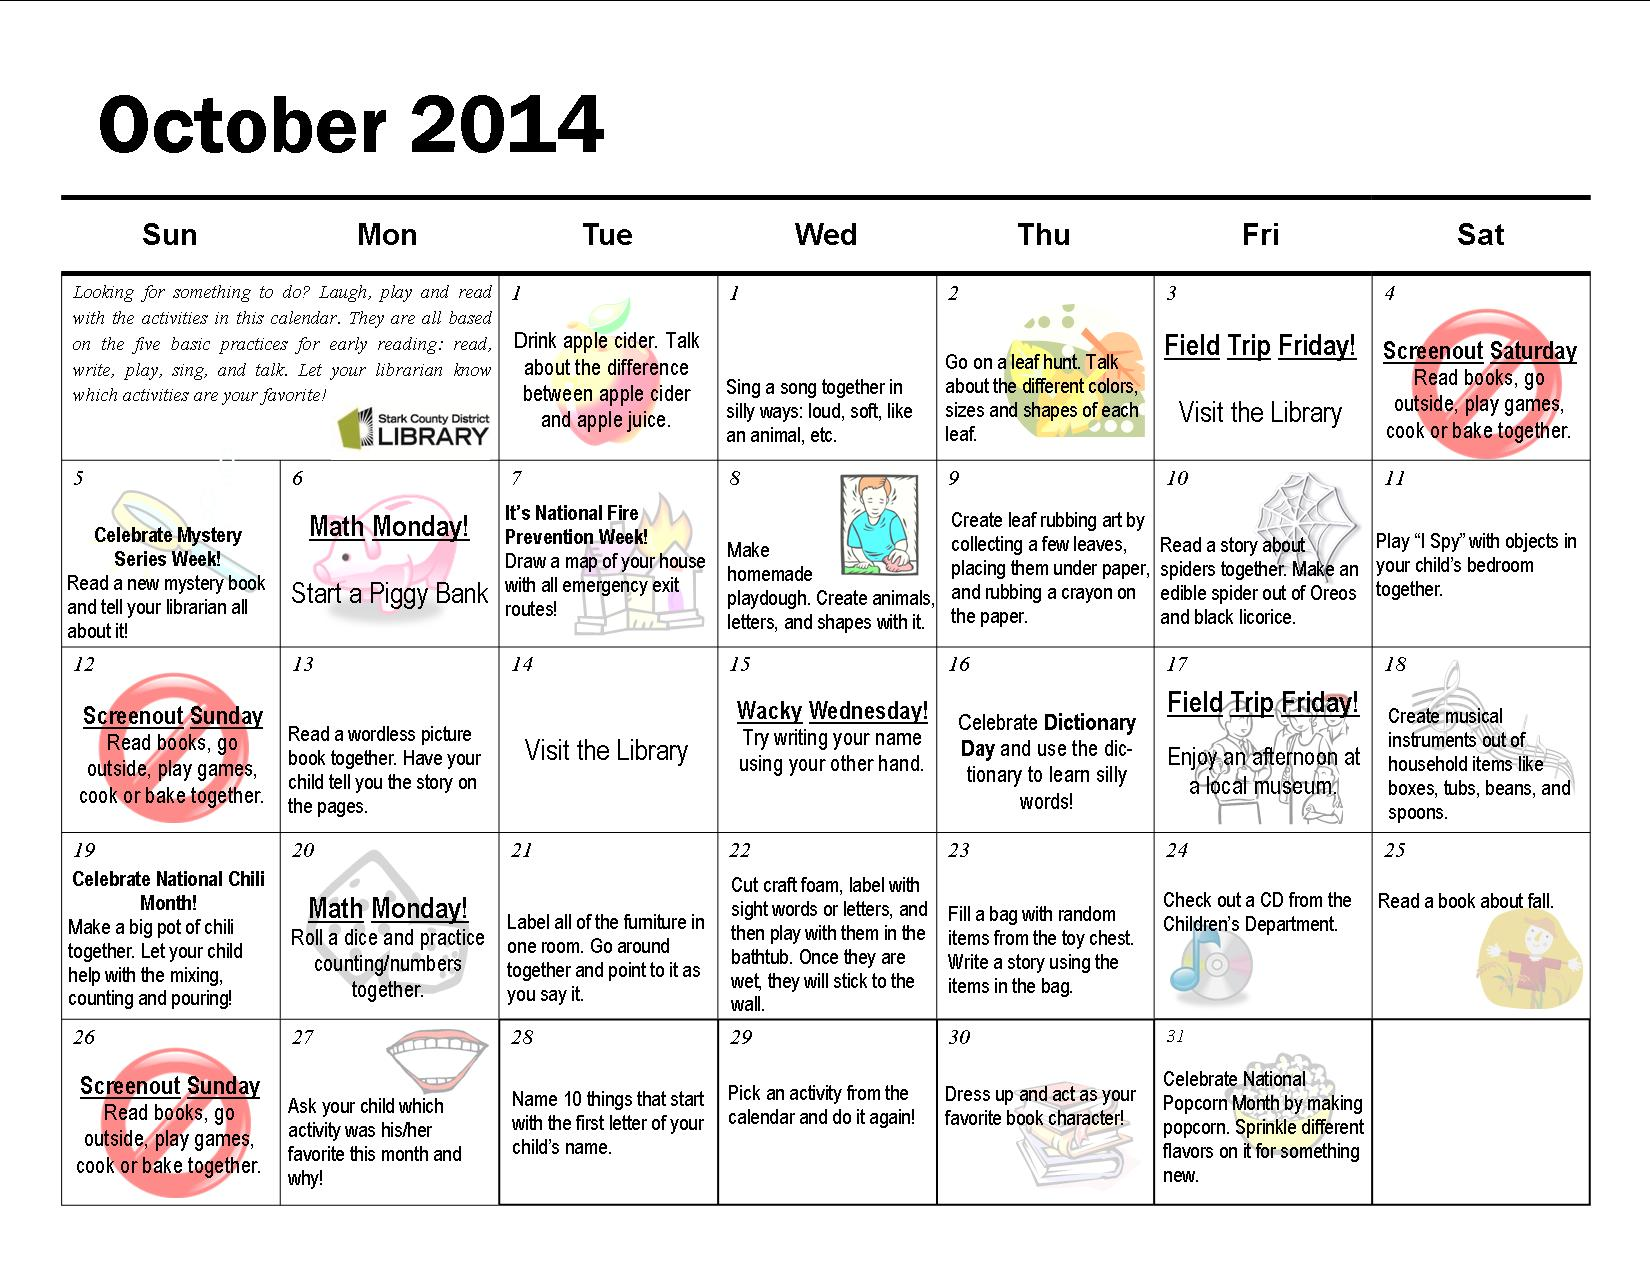 October Monthly Activity Calendar